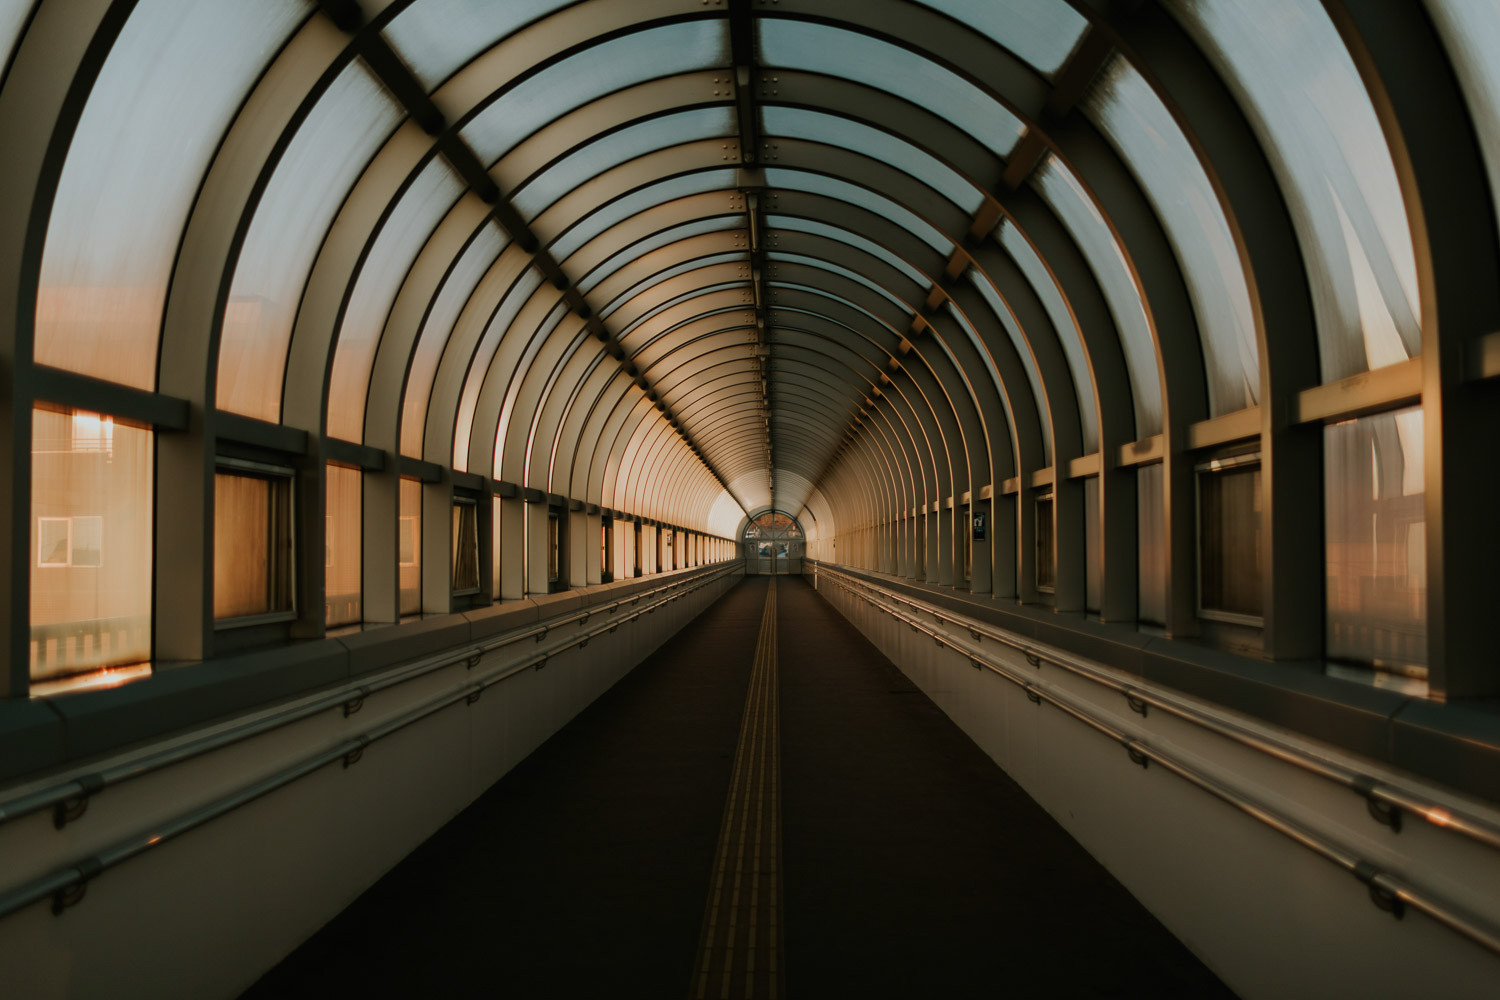 Image of walking tunnel